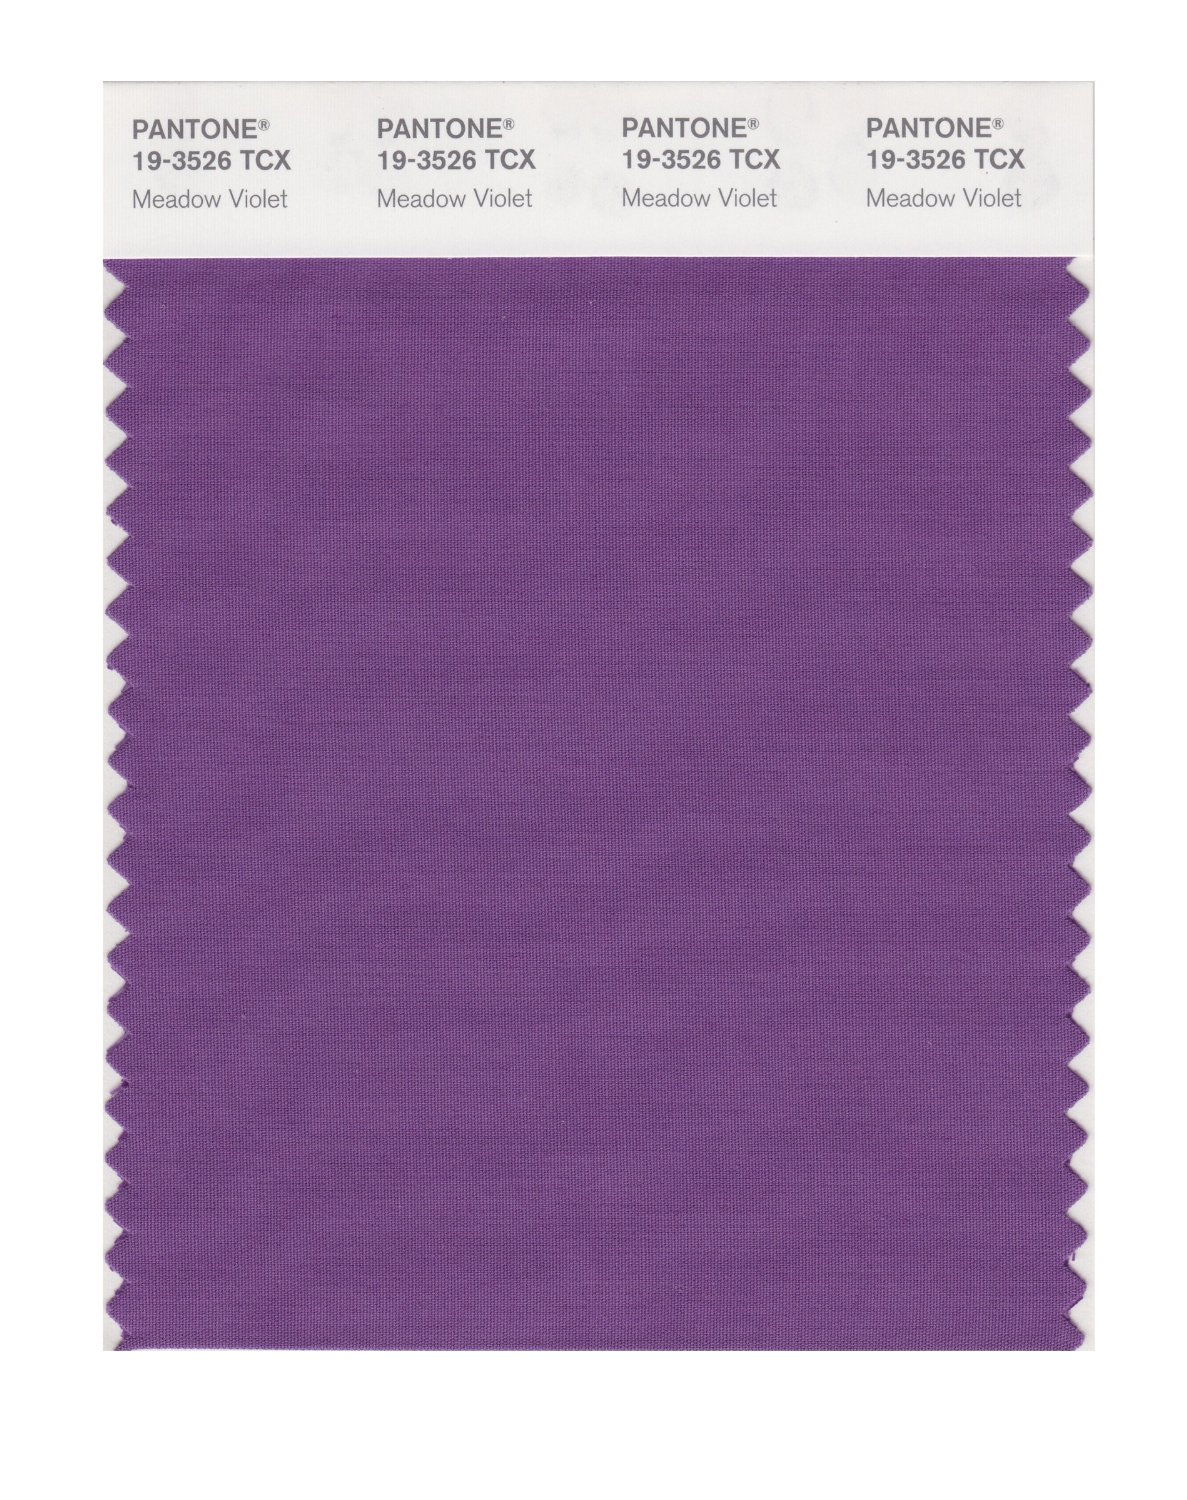 Pantone Smart Swatch 19-3526 Meadow Violet